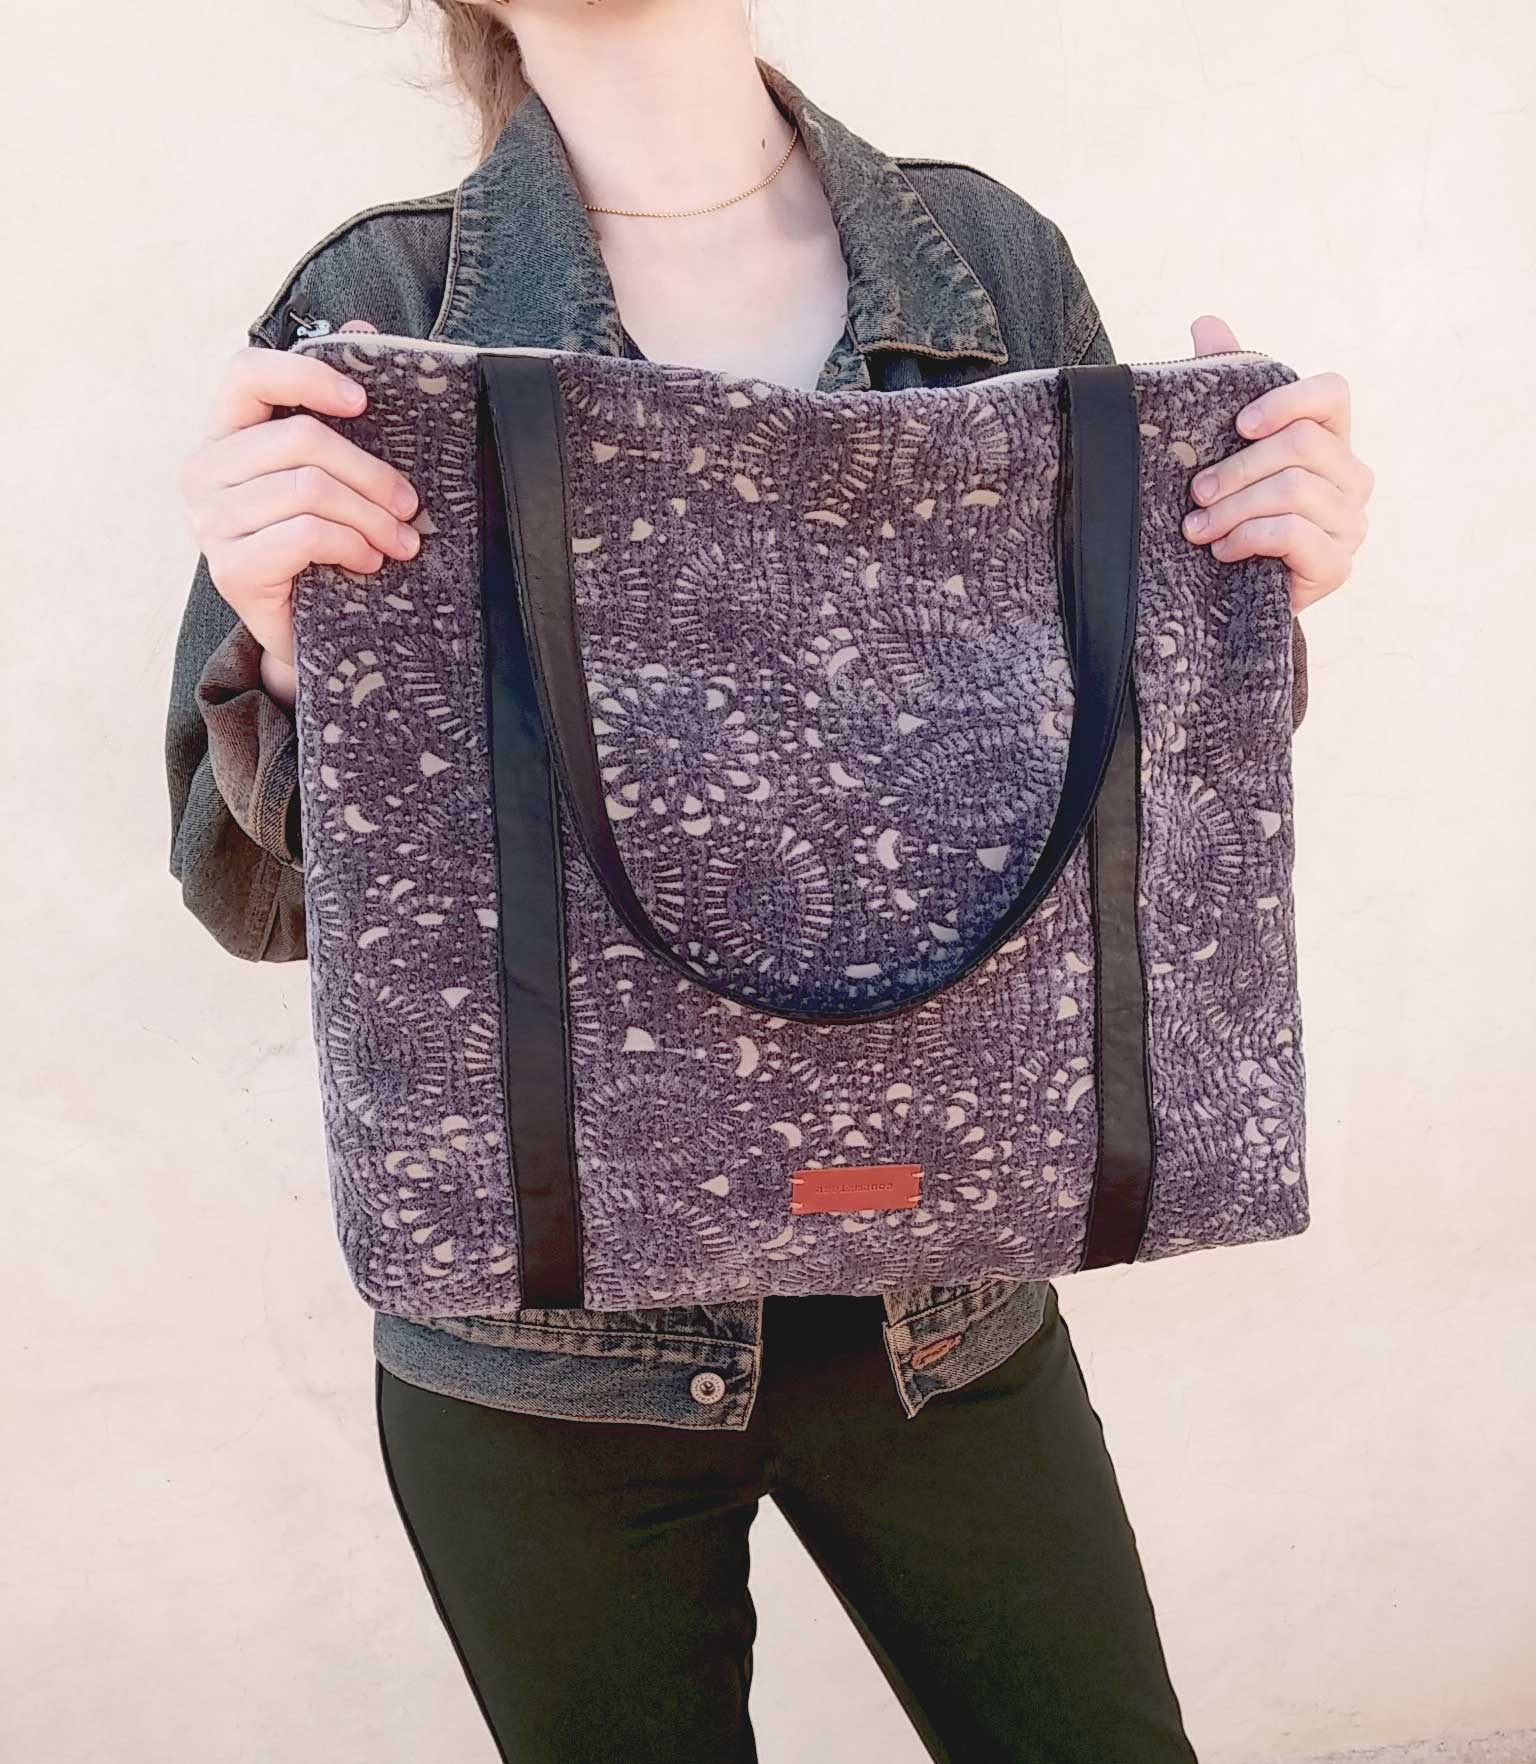 purple tapestry bag held in hands